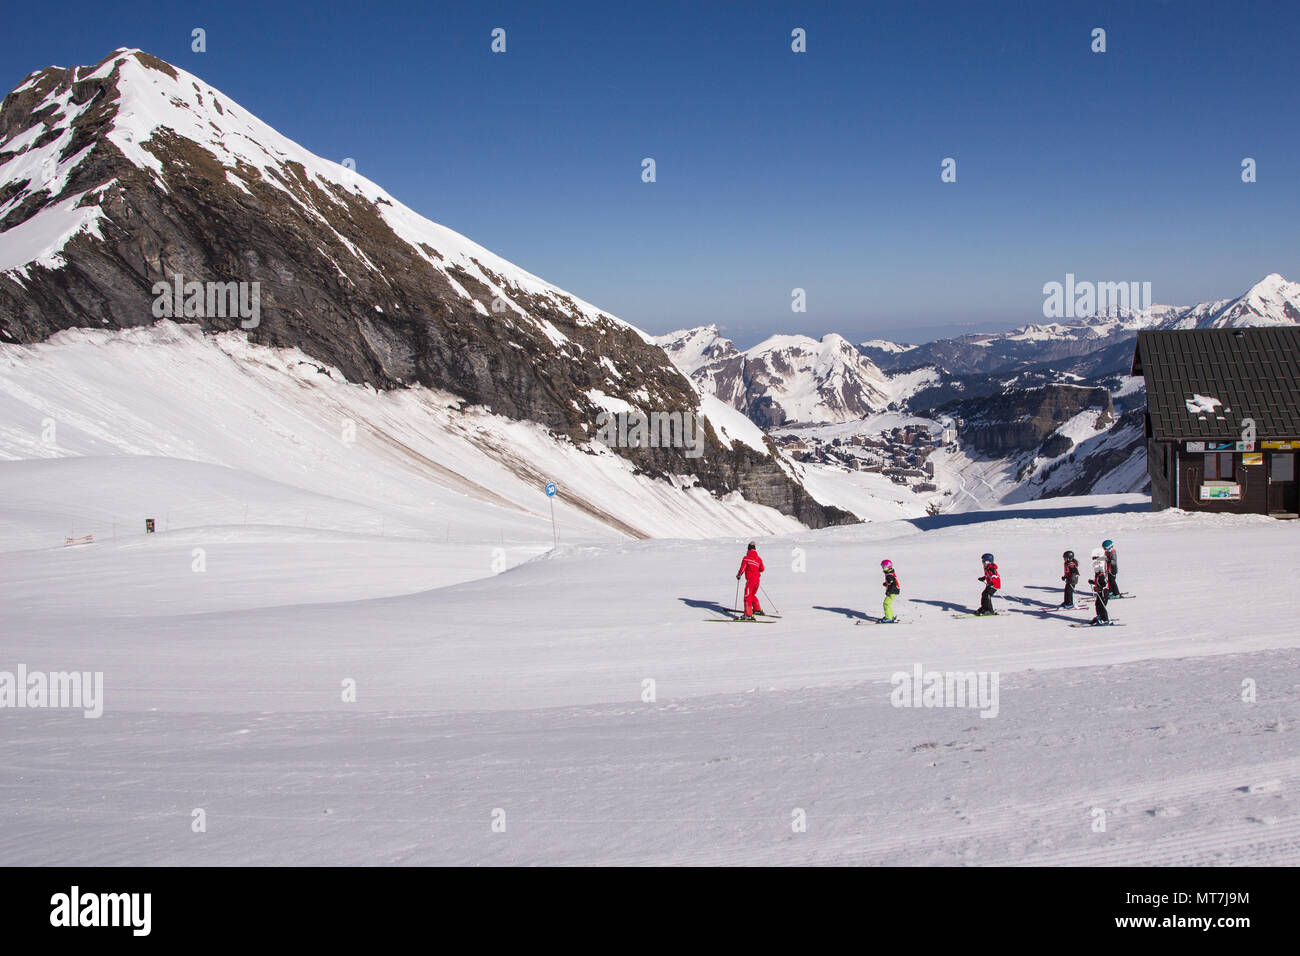 An instructor leads out a group of small children down a blue run in the ski resort of Avoriaz in the French Alps. The town can be seen at the bottom - Stock Image